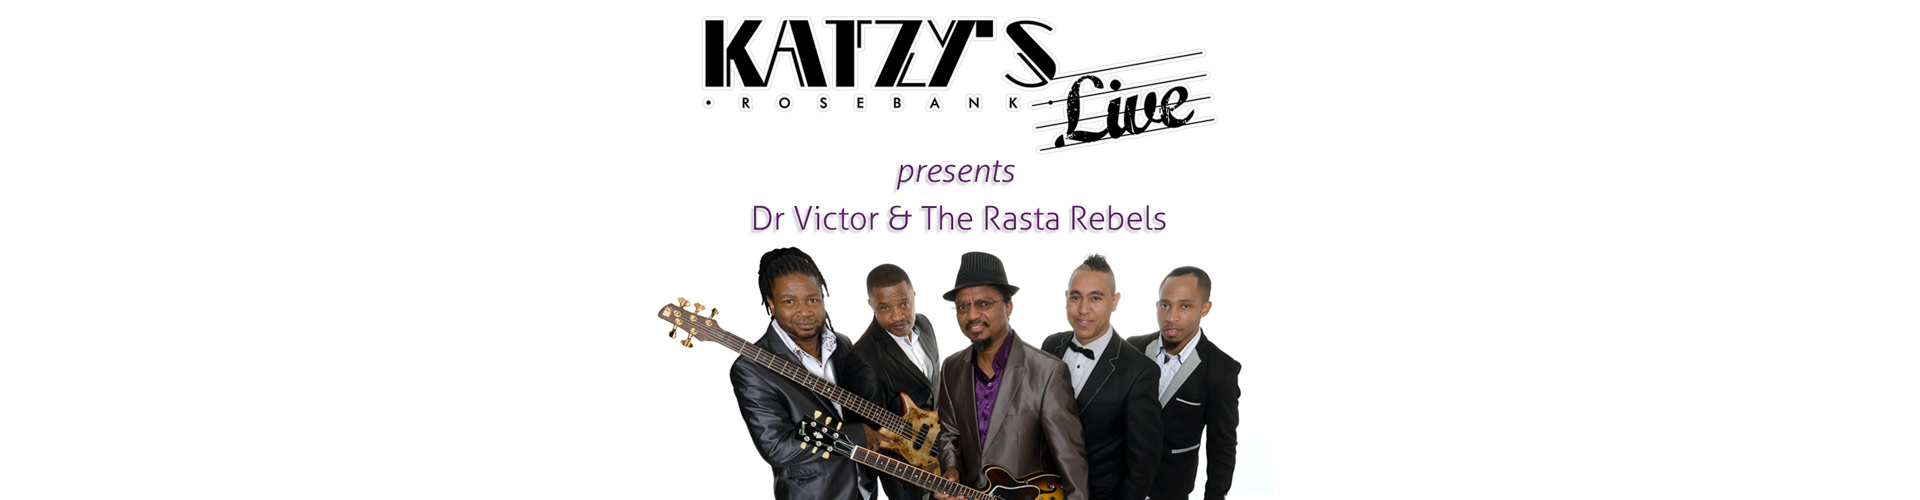 Dr Victor and The Rasta Rebels at Katzy's Live